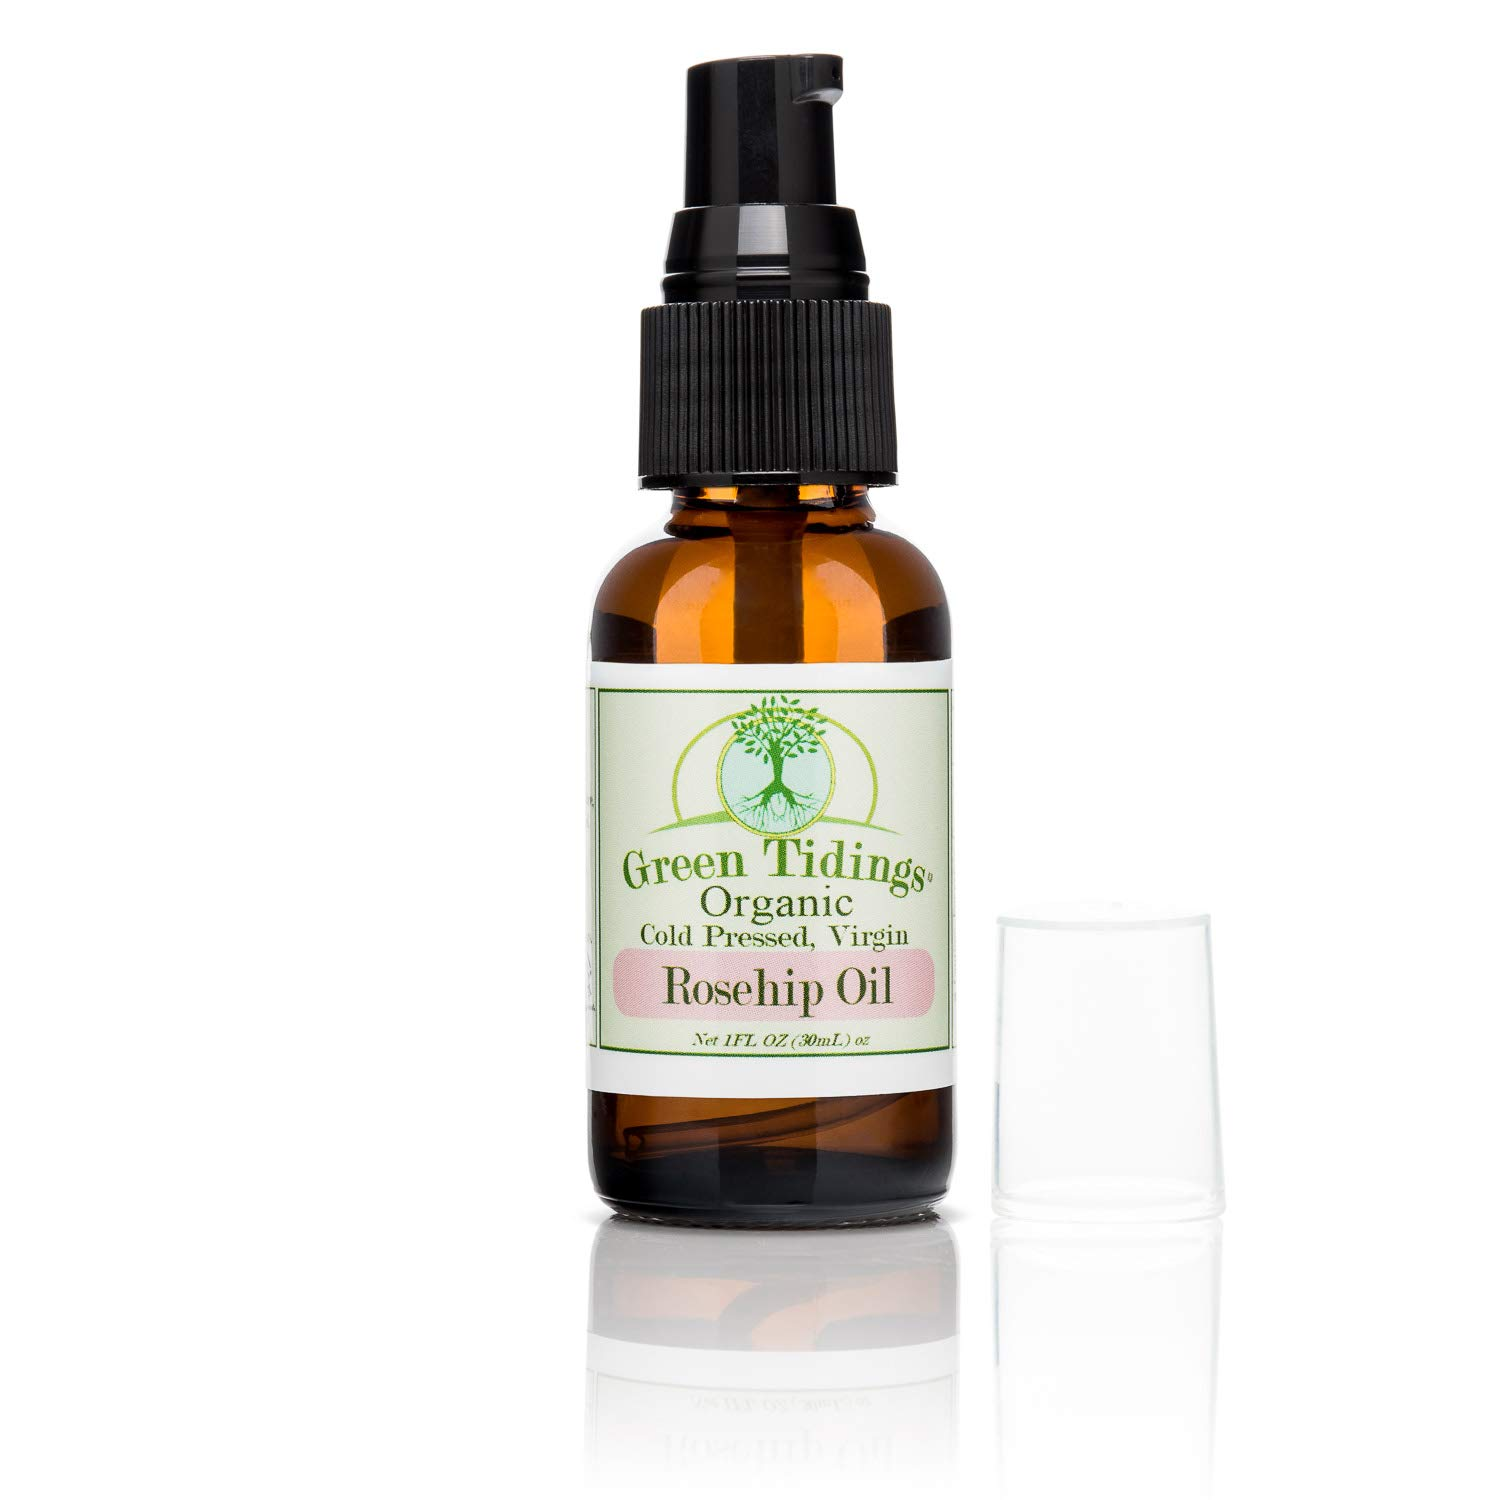 Green Tidings Organic Rosehip Seed Oil for Skin & Hair, 100% Pure Cold-Pressed, Virgin, Unrefined Rosehip Facial Oil - All Natural Face Oil for Healing Sunburn, Nails, Wrinkles, Stretch Marks